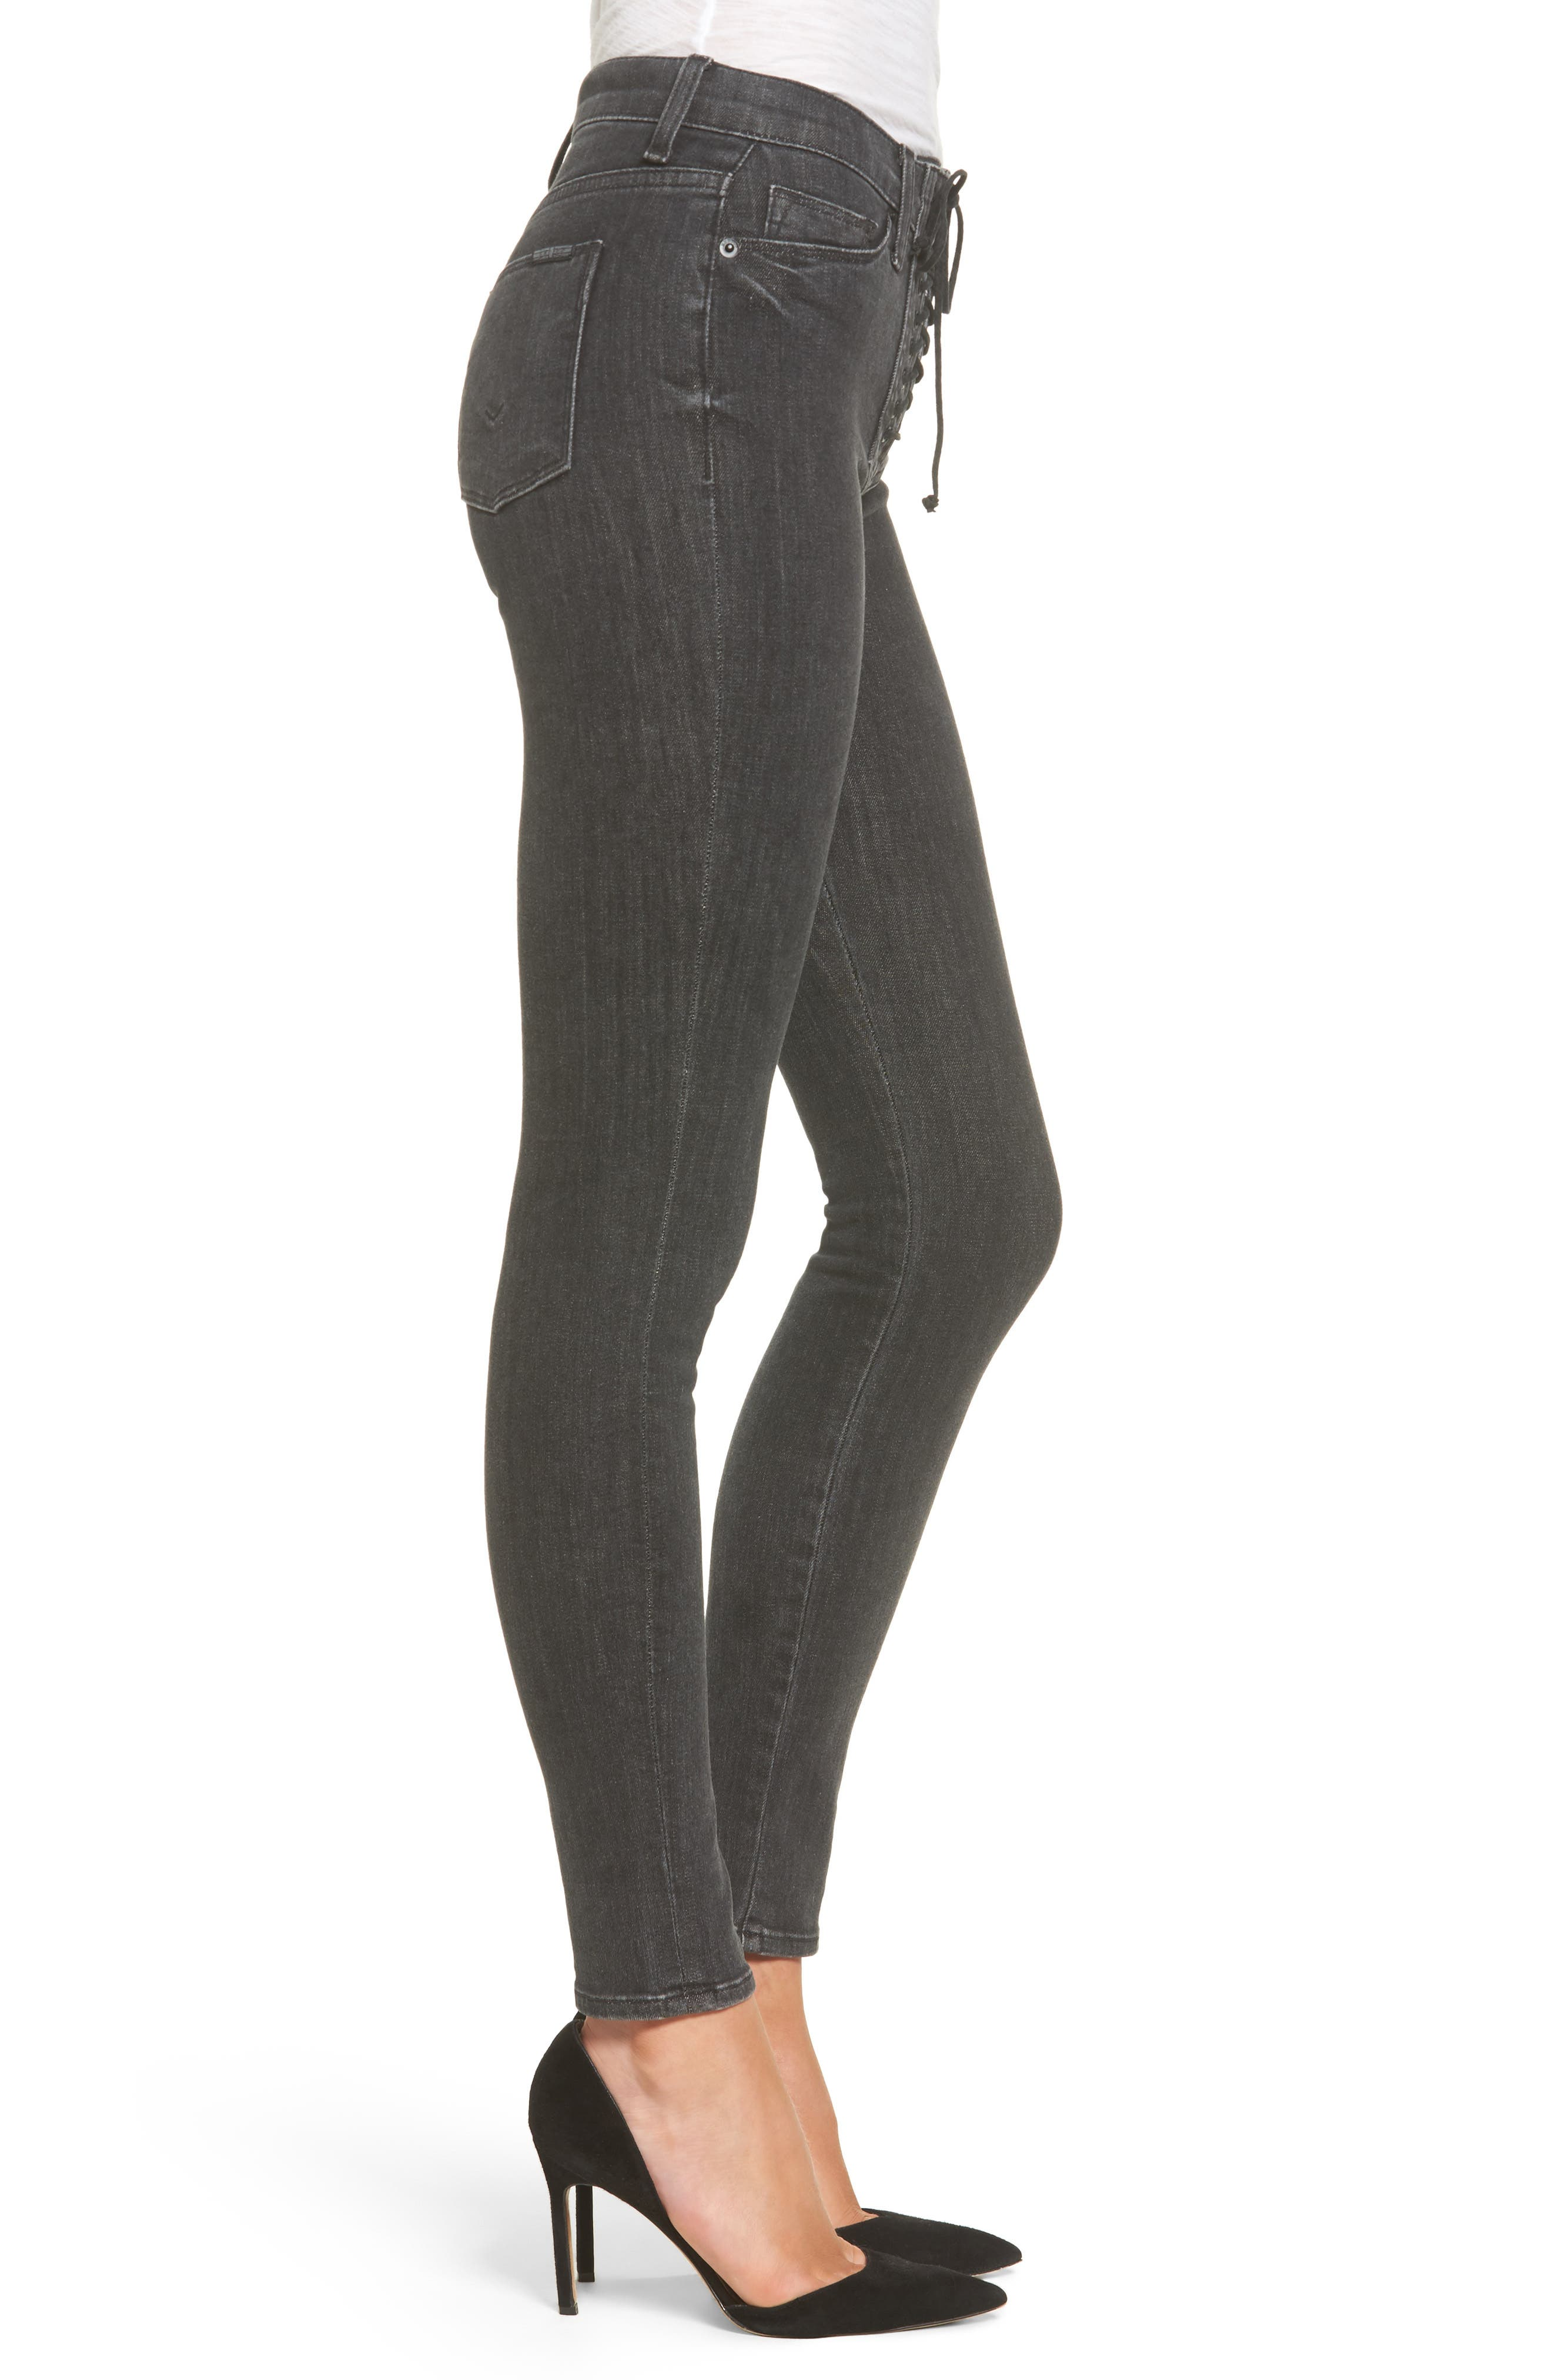 Bullocks High Waist Lace-Up Skinny Jeans,                             Alternate thumbnail 3, color,                             Vacancy